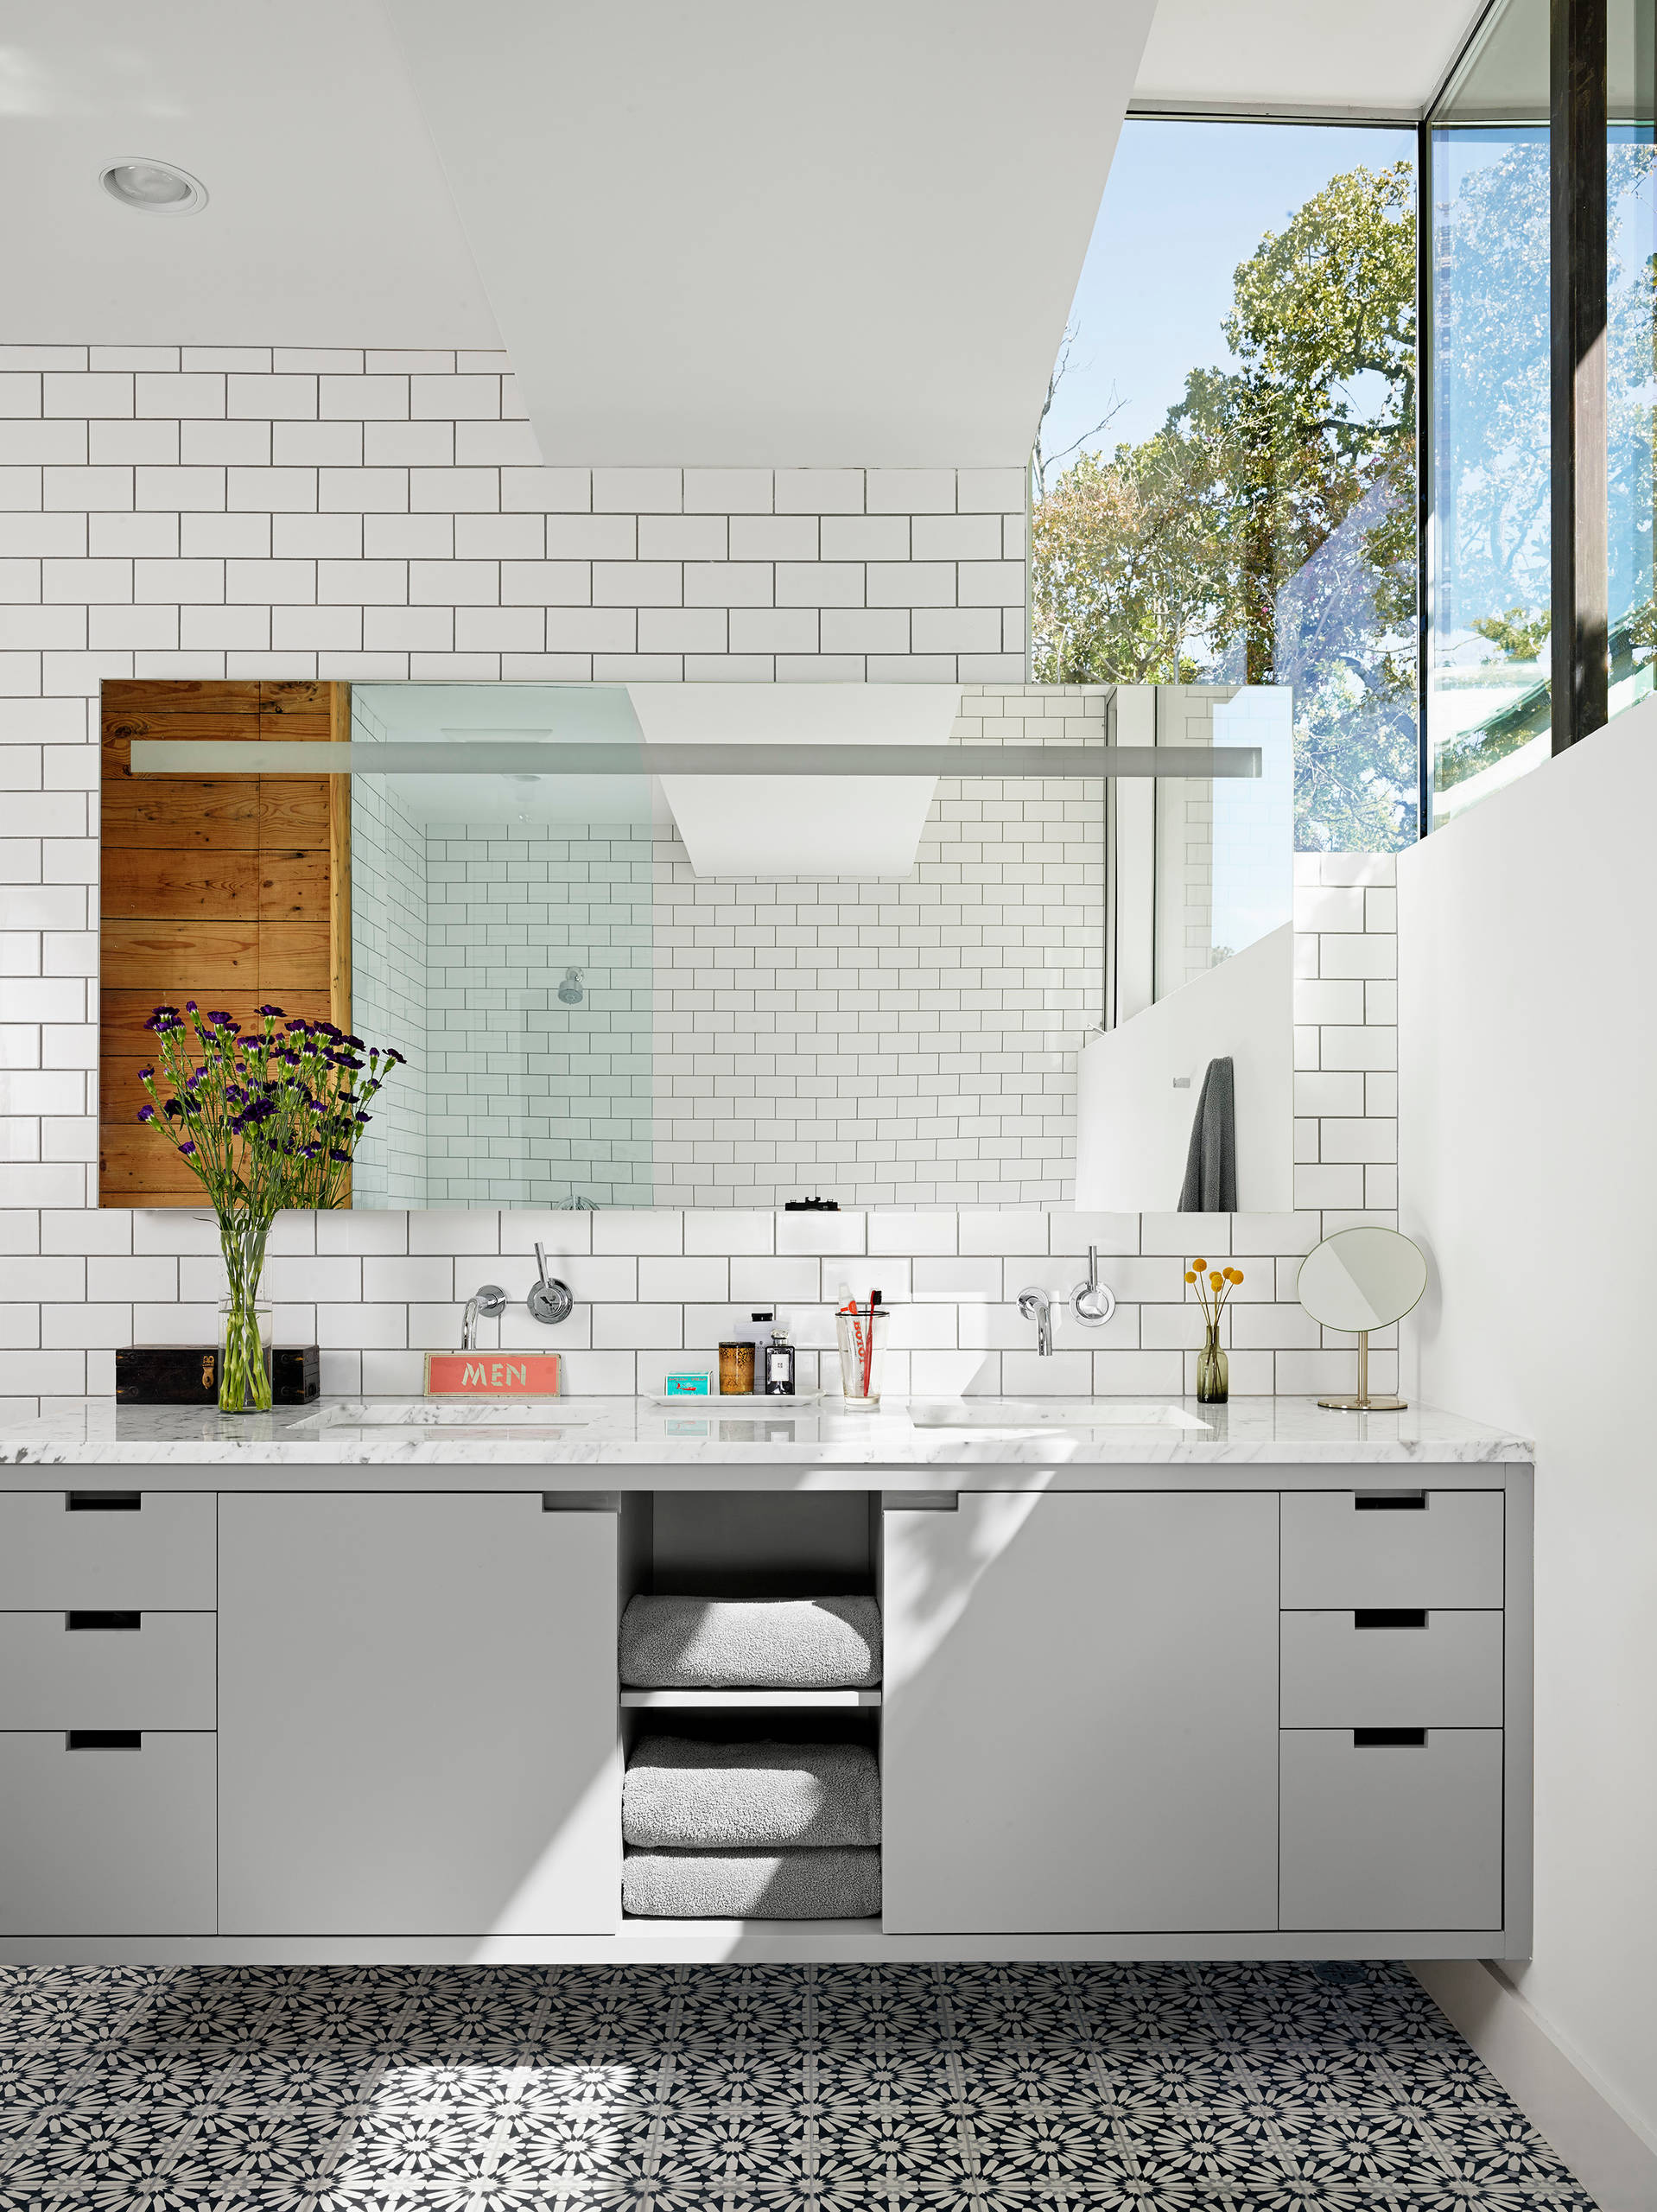 White Tiles Grey Grout Contemporary Bathroom Accent Tiles Bathroom Mirror Clerestory Double Sinks and Double Vanity Floating Vanity